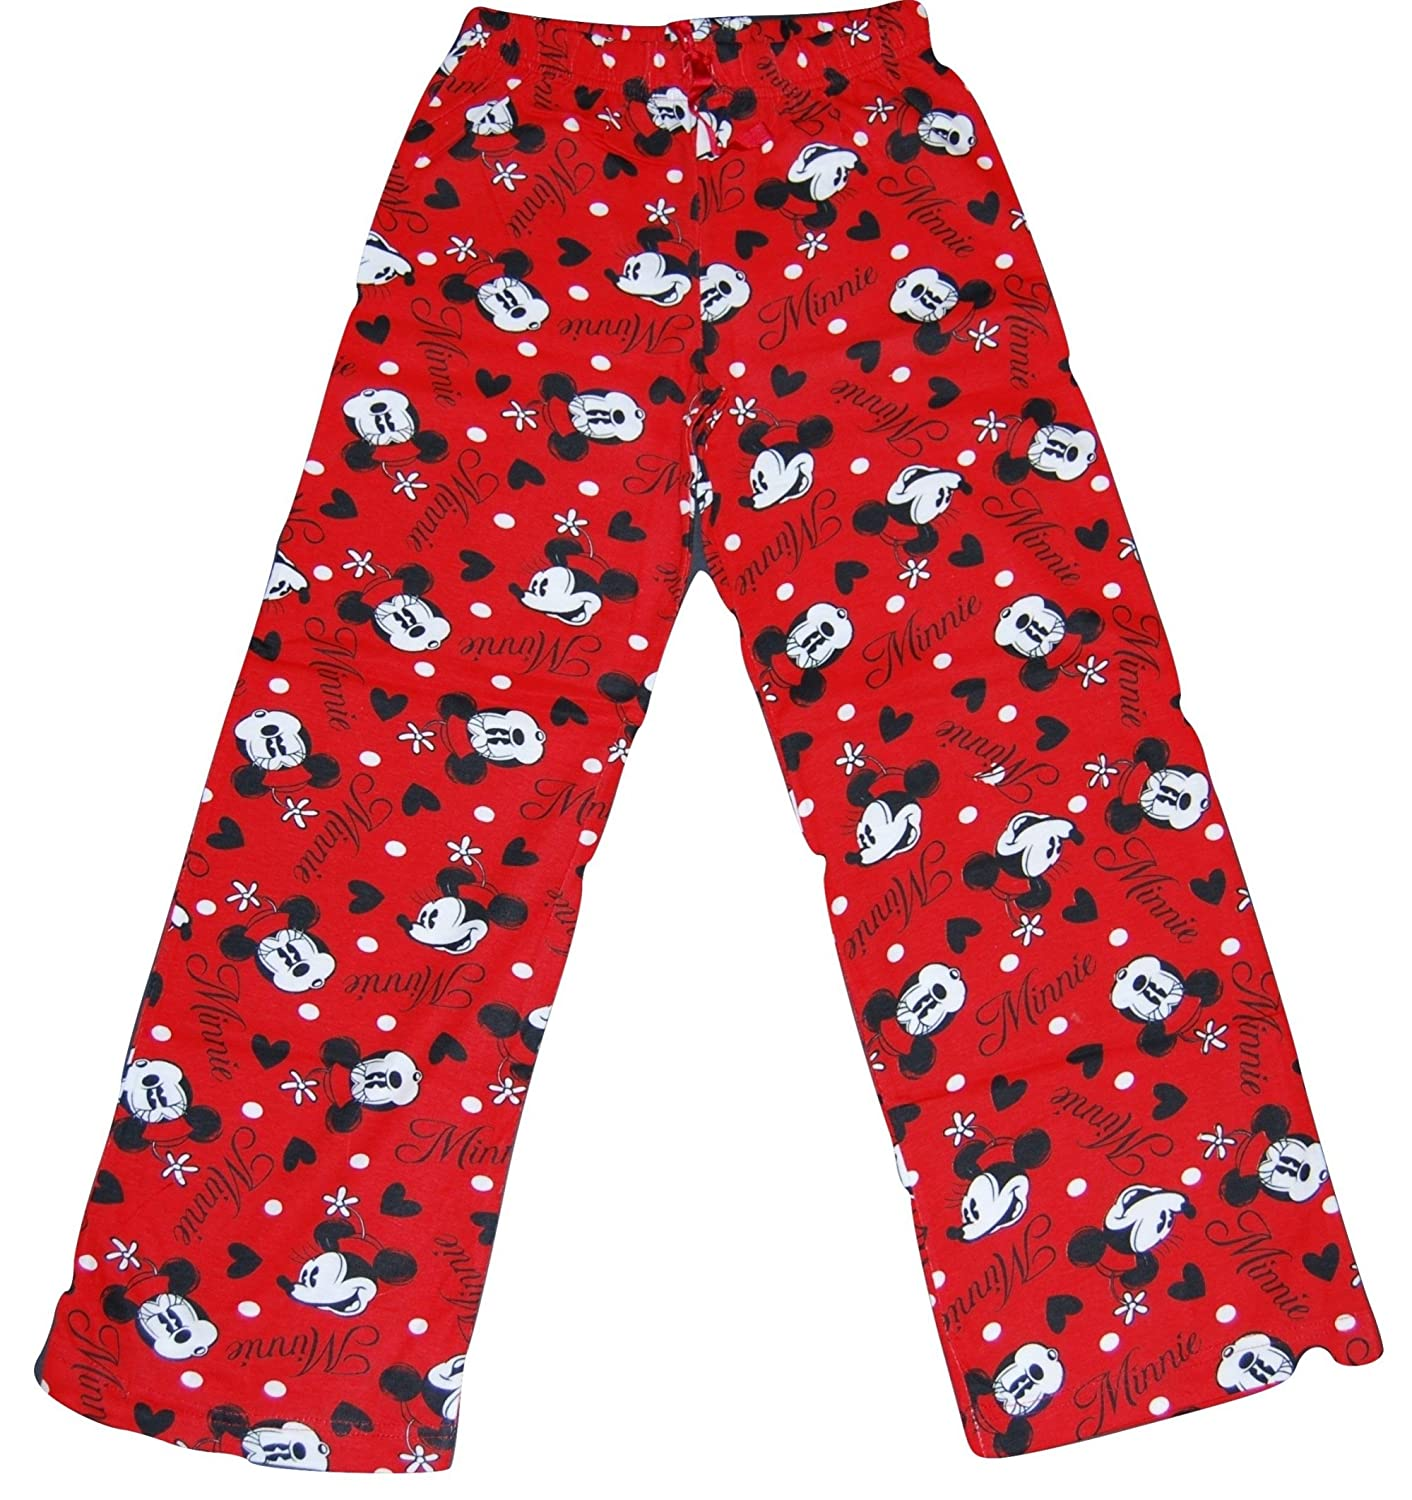 Girls Official Minnie Mouse Character Lounge Wear Pants Pyjama Bottoms Sleepwear nightwear